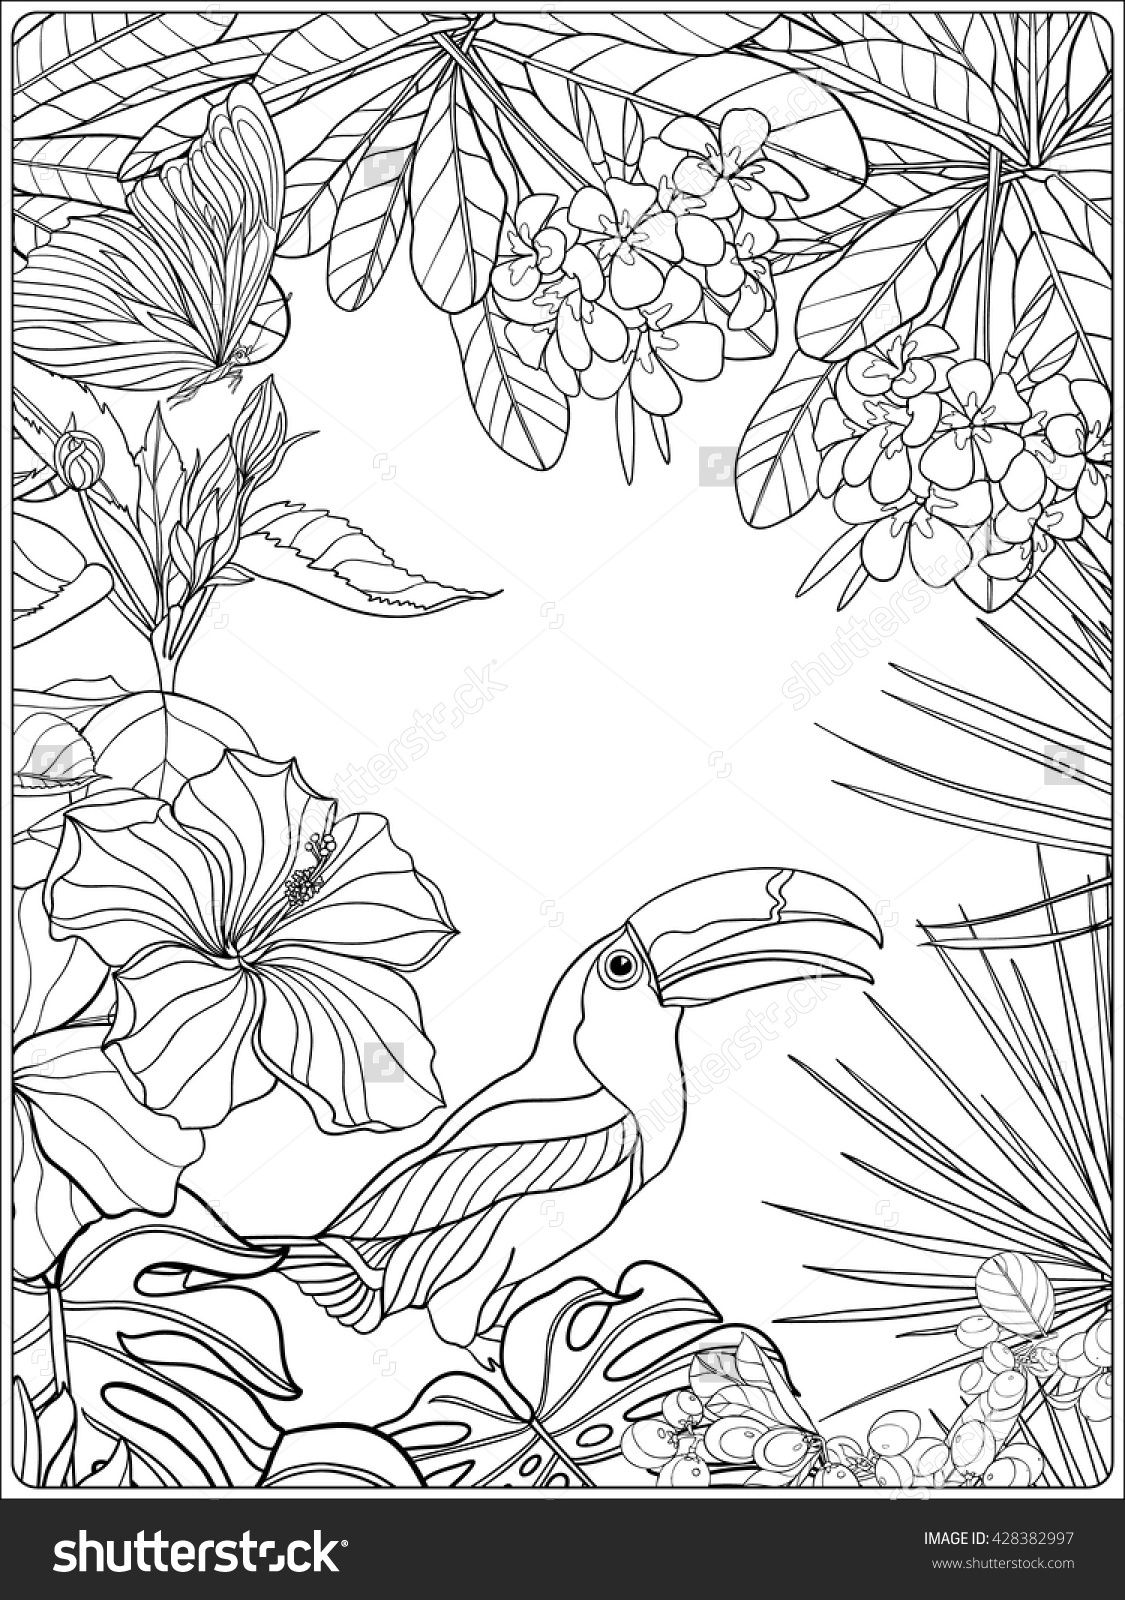 tropical bird coloring pages - photo#38